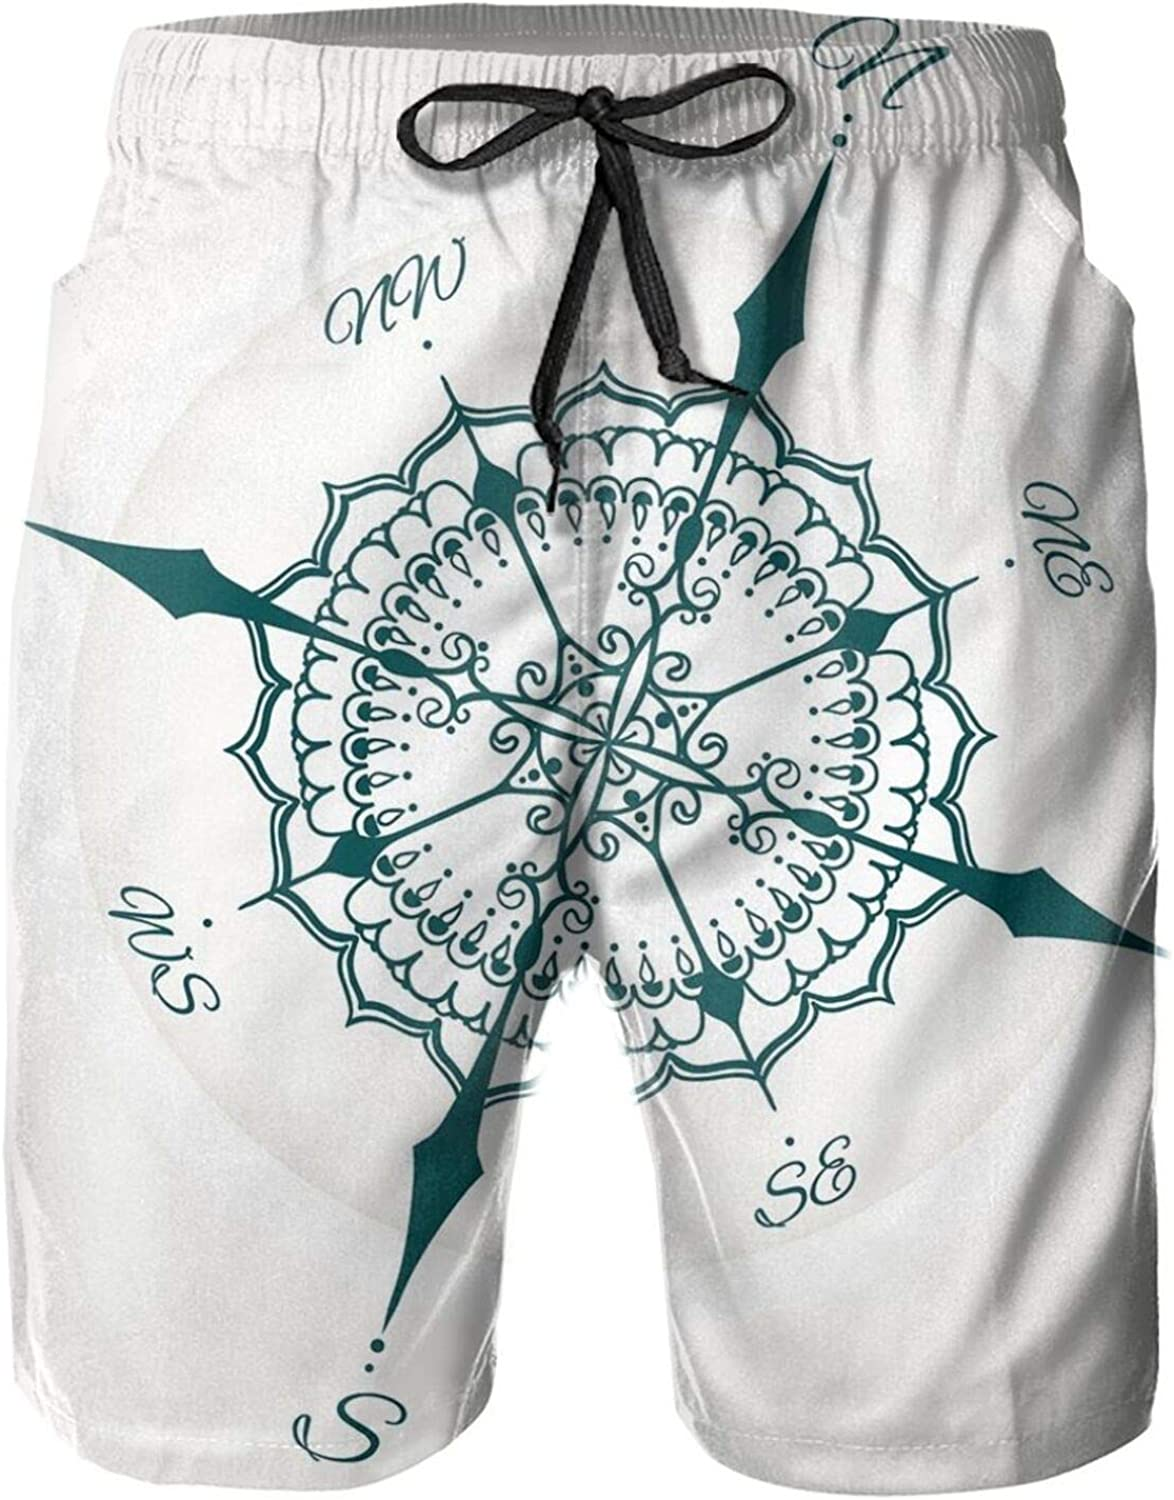 Hand Drawn Compass with Floral Arrangement Design Compass Boating Theme Print Style Mens Swim Trucks Shorts with Mesh Lining,XL